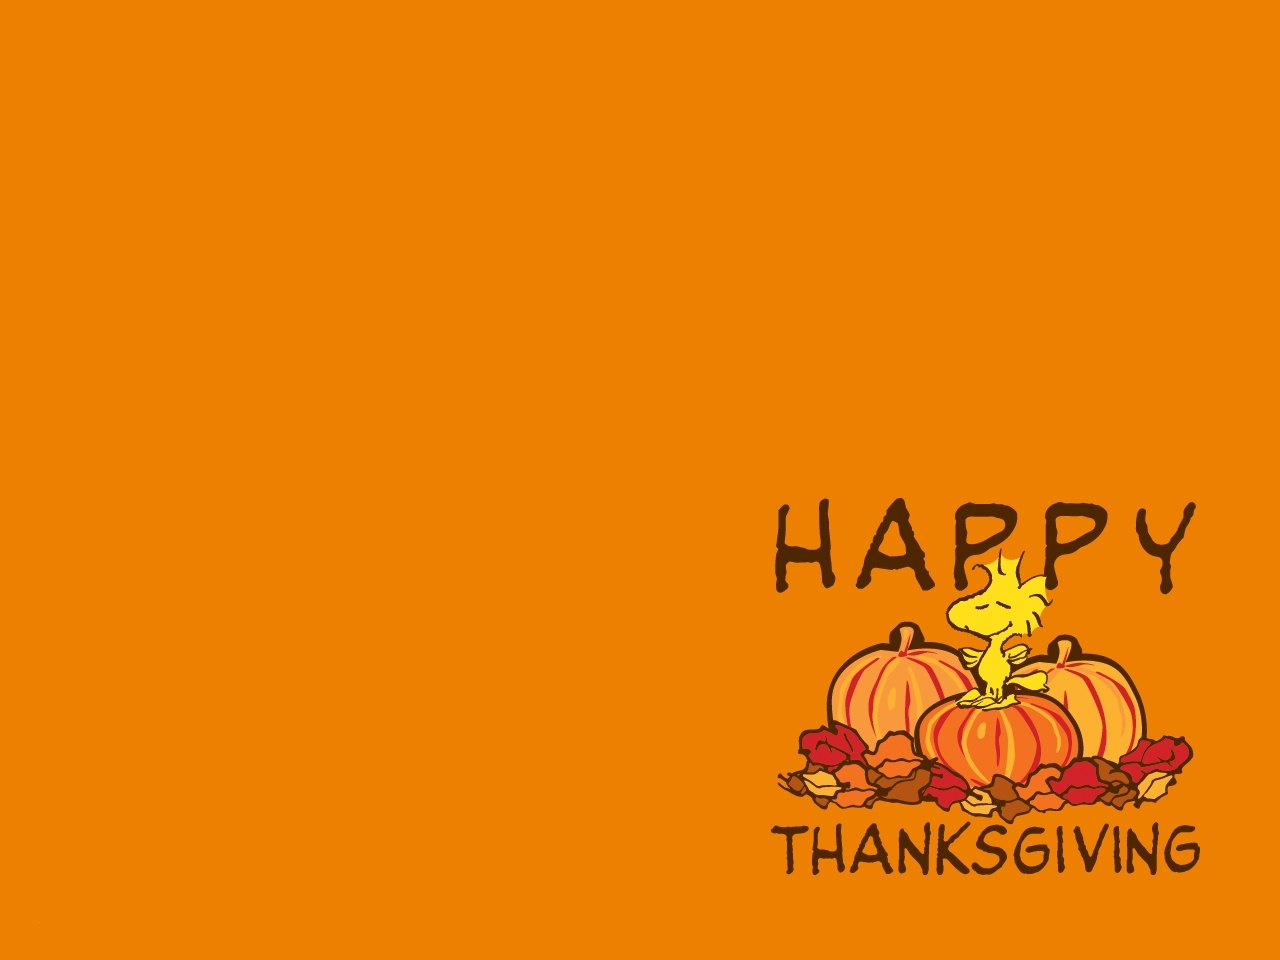 thanksgiving day 2012: free hd thanksgiving wallpapers for ipad and